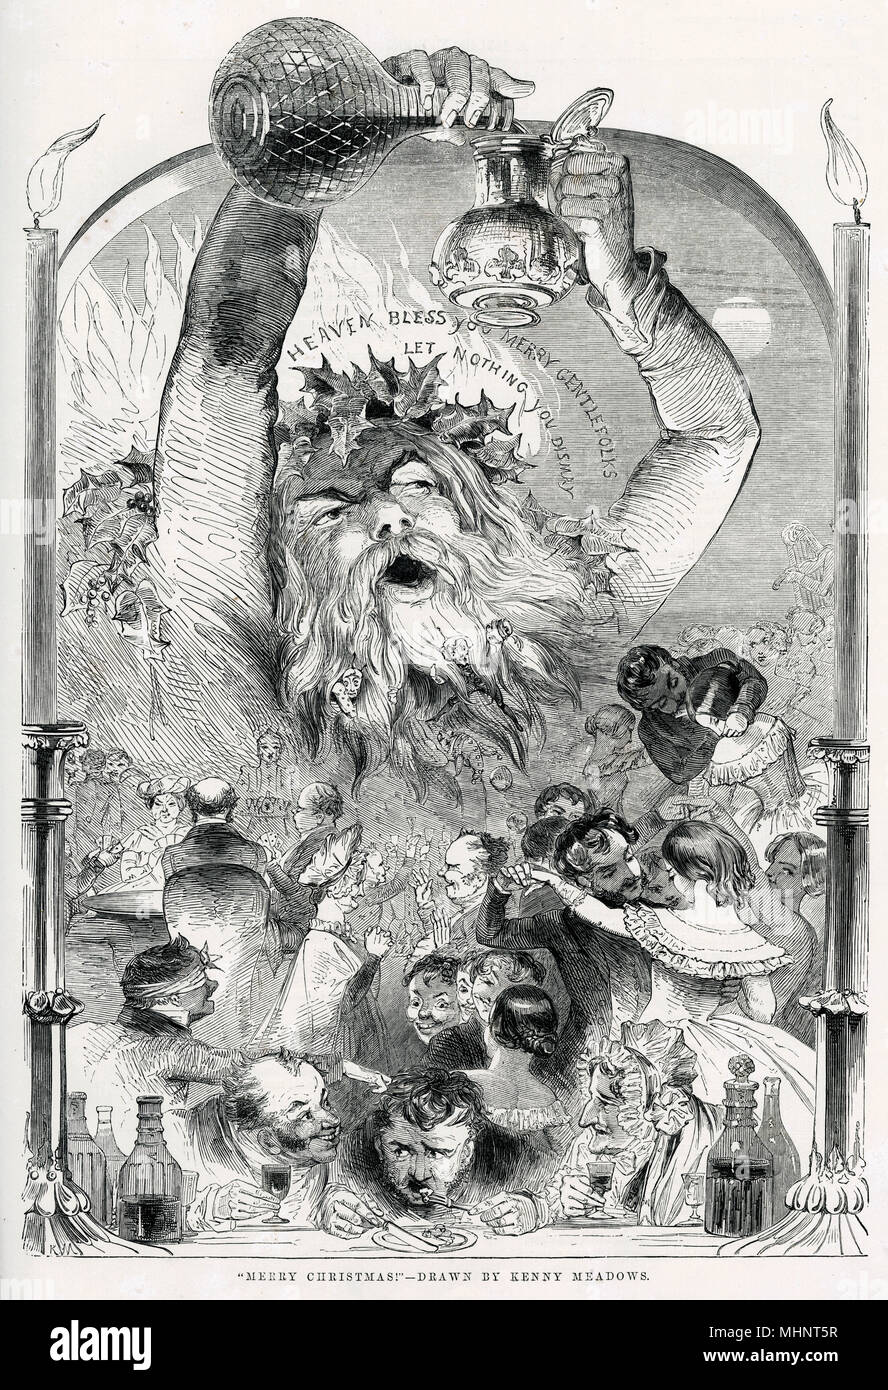 """Heaven Bless you Merry Gentlefolks let Nothing You Dismay,""  Page of Victorian men and women getting into the Christmas spirit! Indulging themselves in food, drink and dance.      Date: circa 1847 - Stock Image"